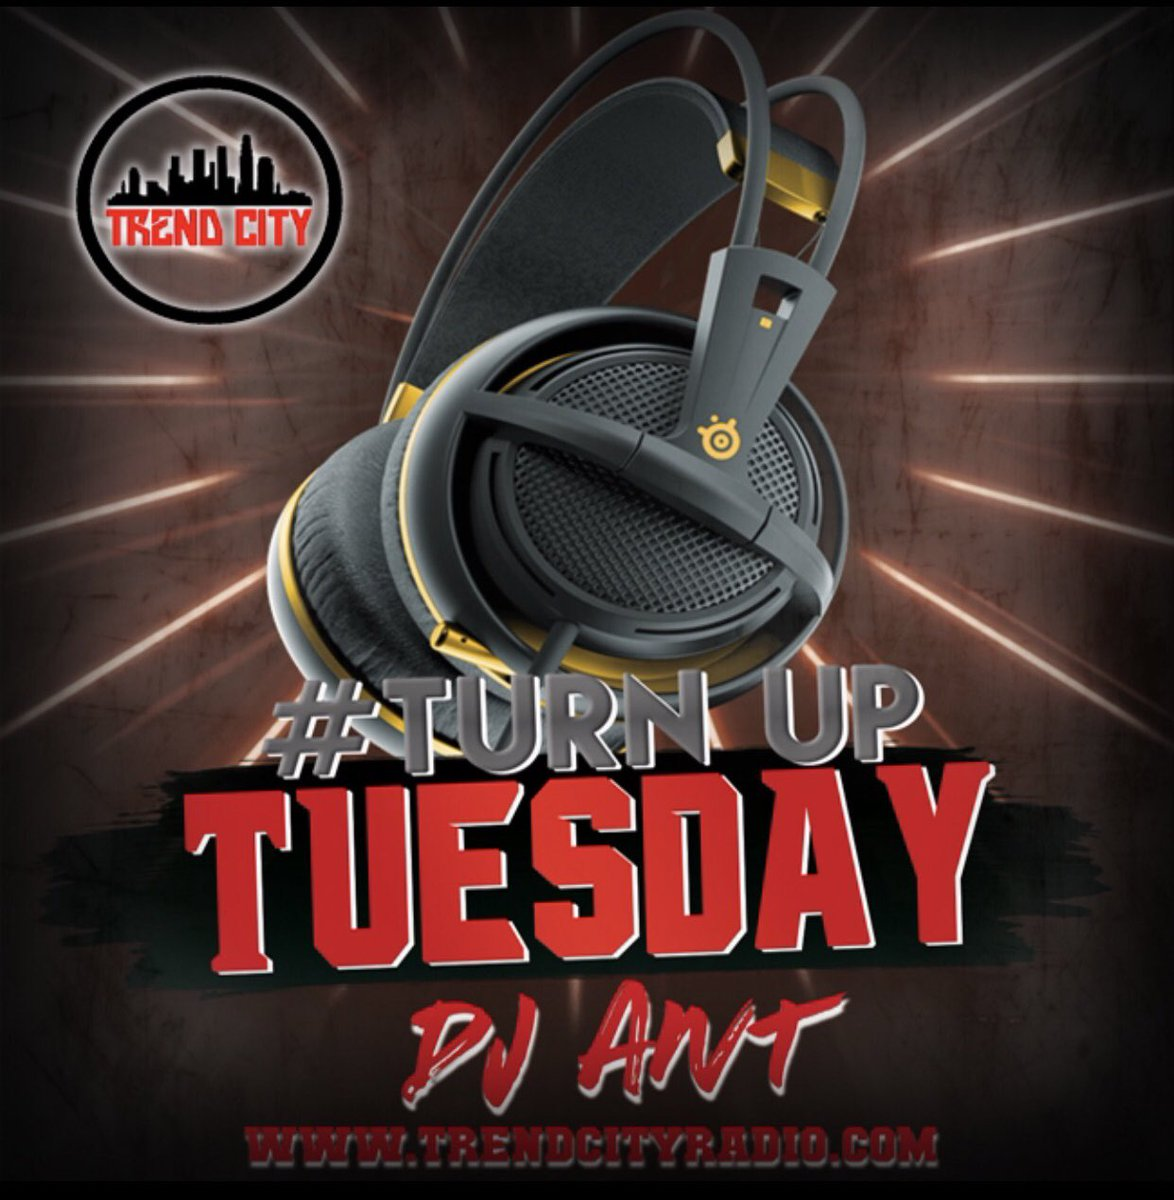 Live Radio, Now playing:  @Cleva_Thoughts - Soak Light  #TurnUpTuesday#NewMusic  Tune in!  http://TrendCityRadio.compic.twitter.com/kQj3Abvnpg